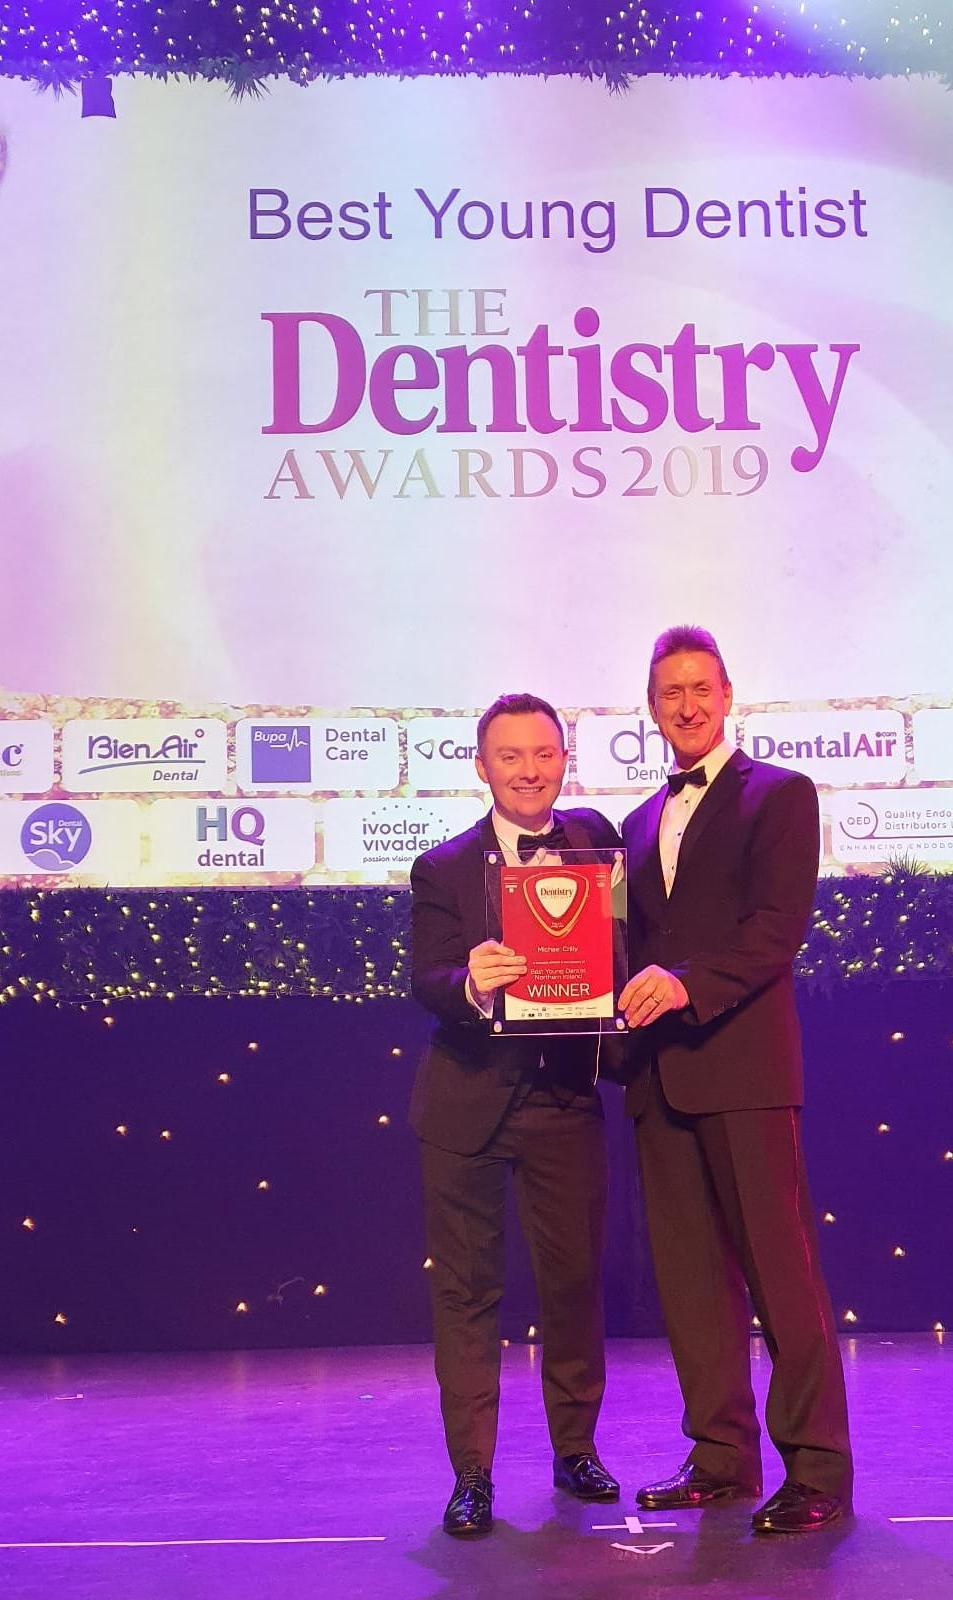 Michael Crilly, winner of best young Dentist at the Dentistry Awards